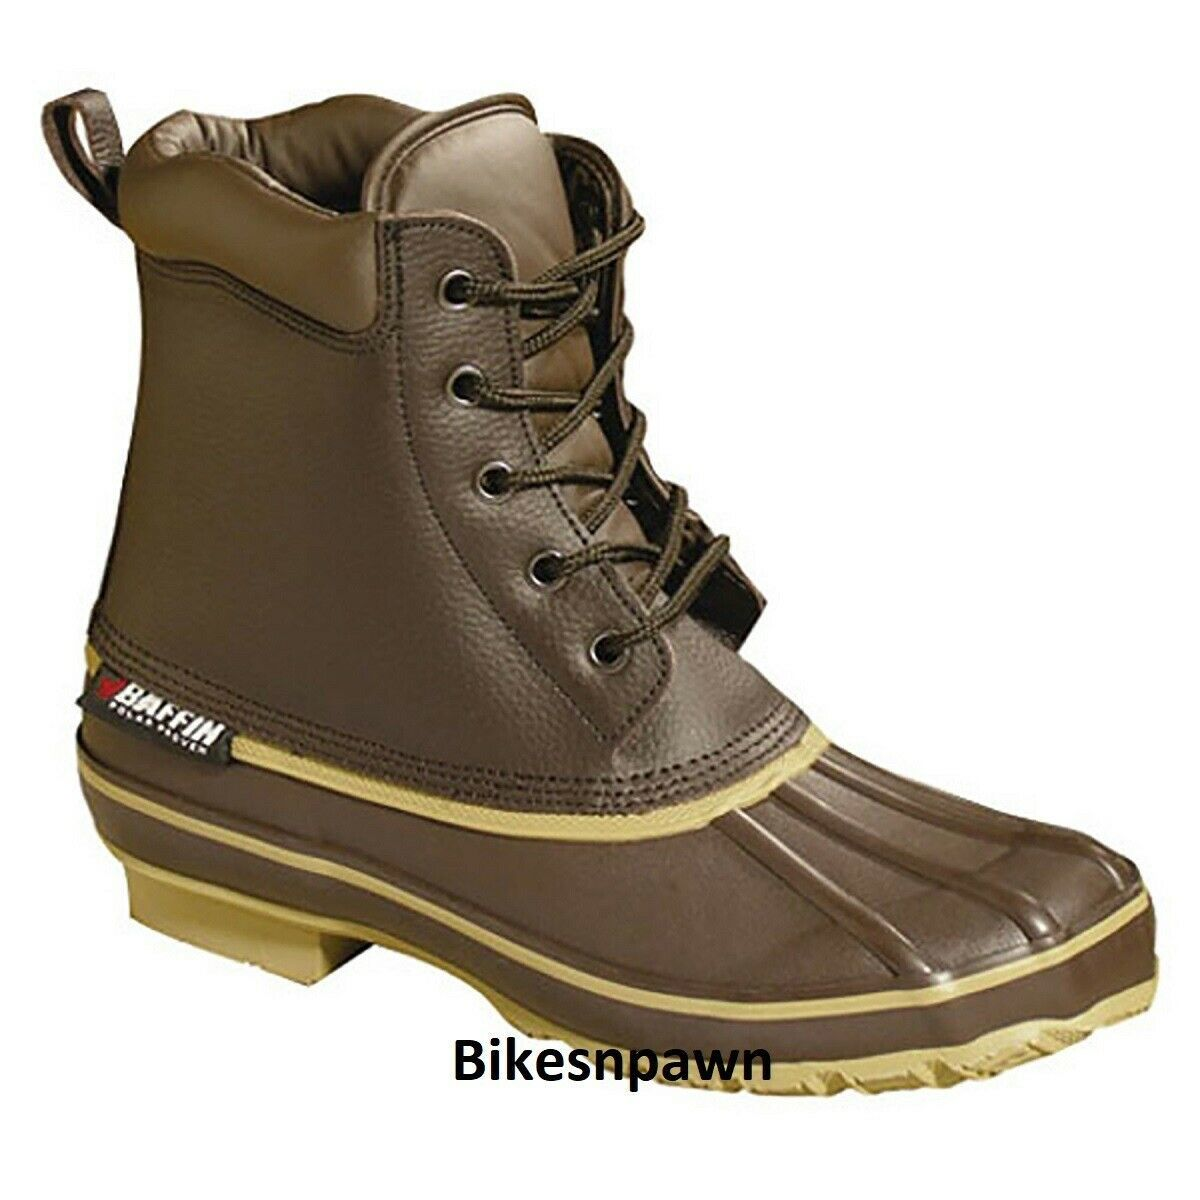 New Mens Size 10 Baffin Moose Waterproof All Season Boots Rated -0 F